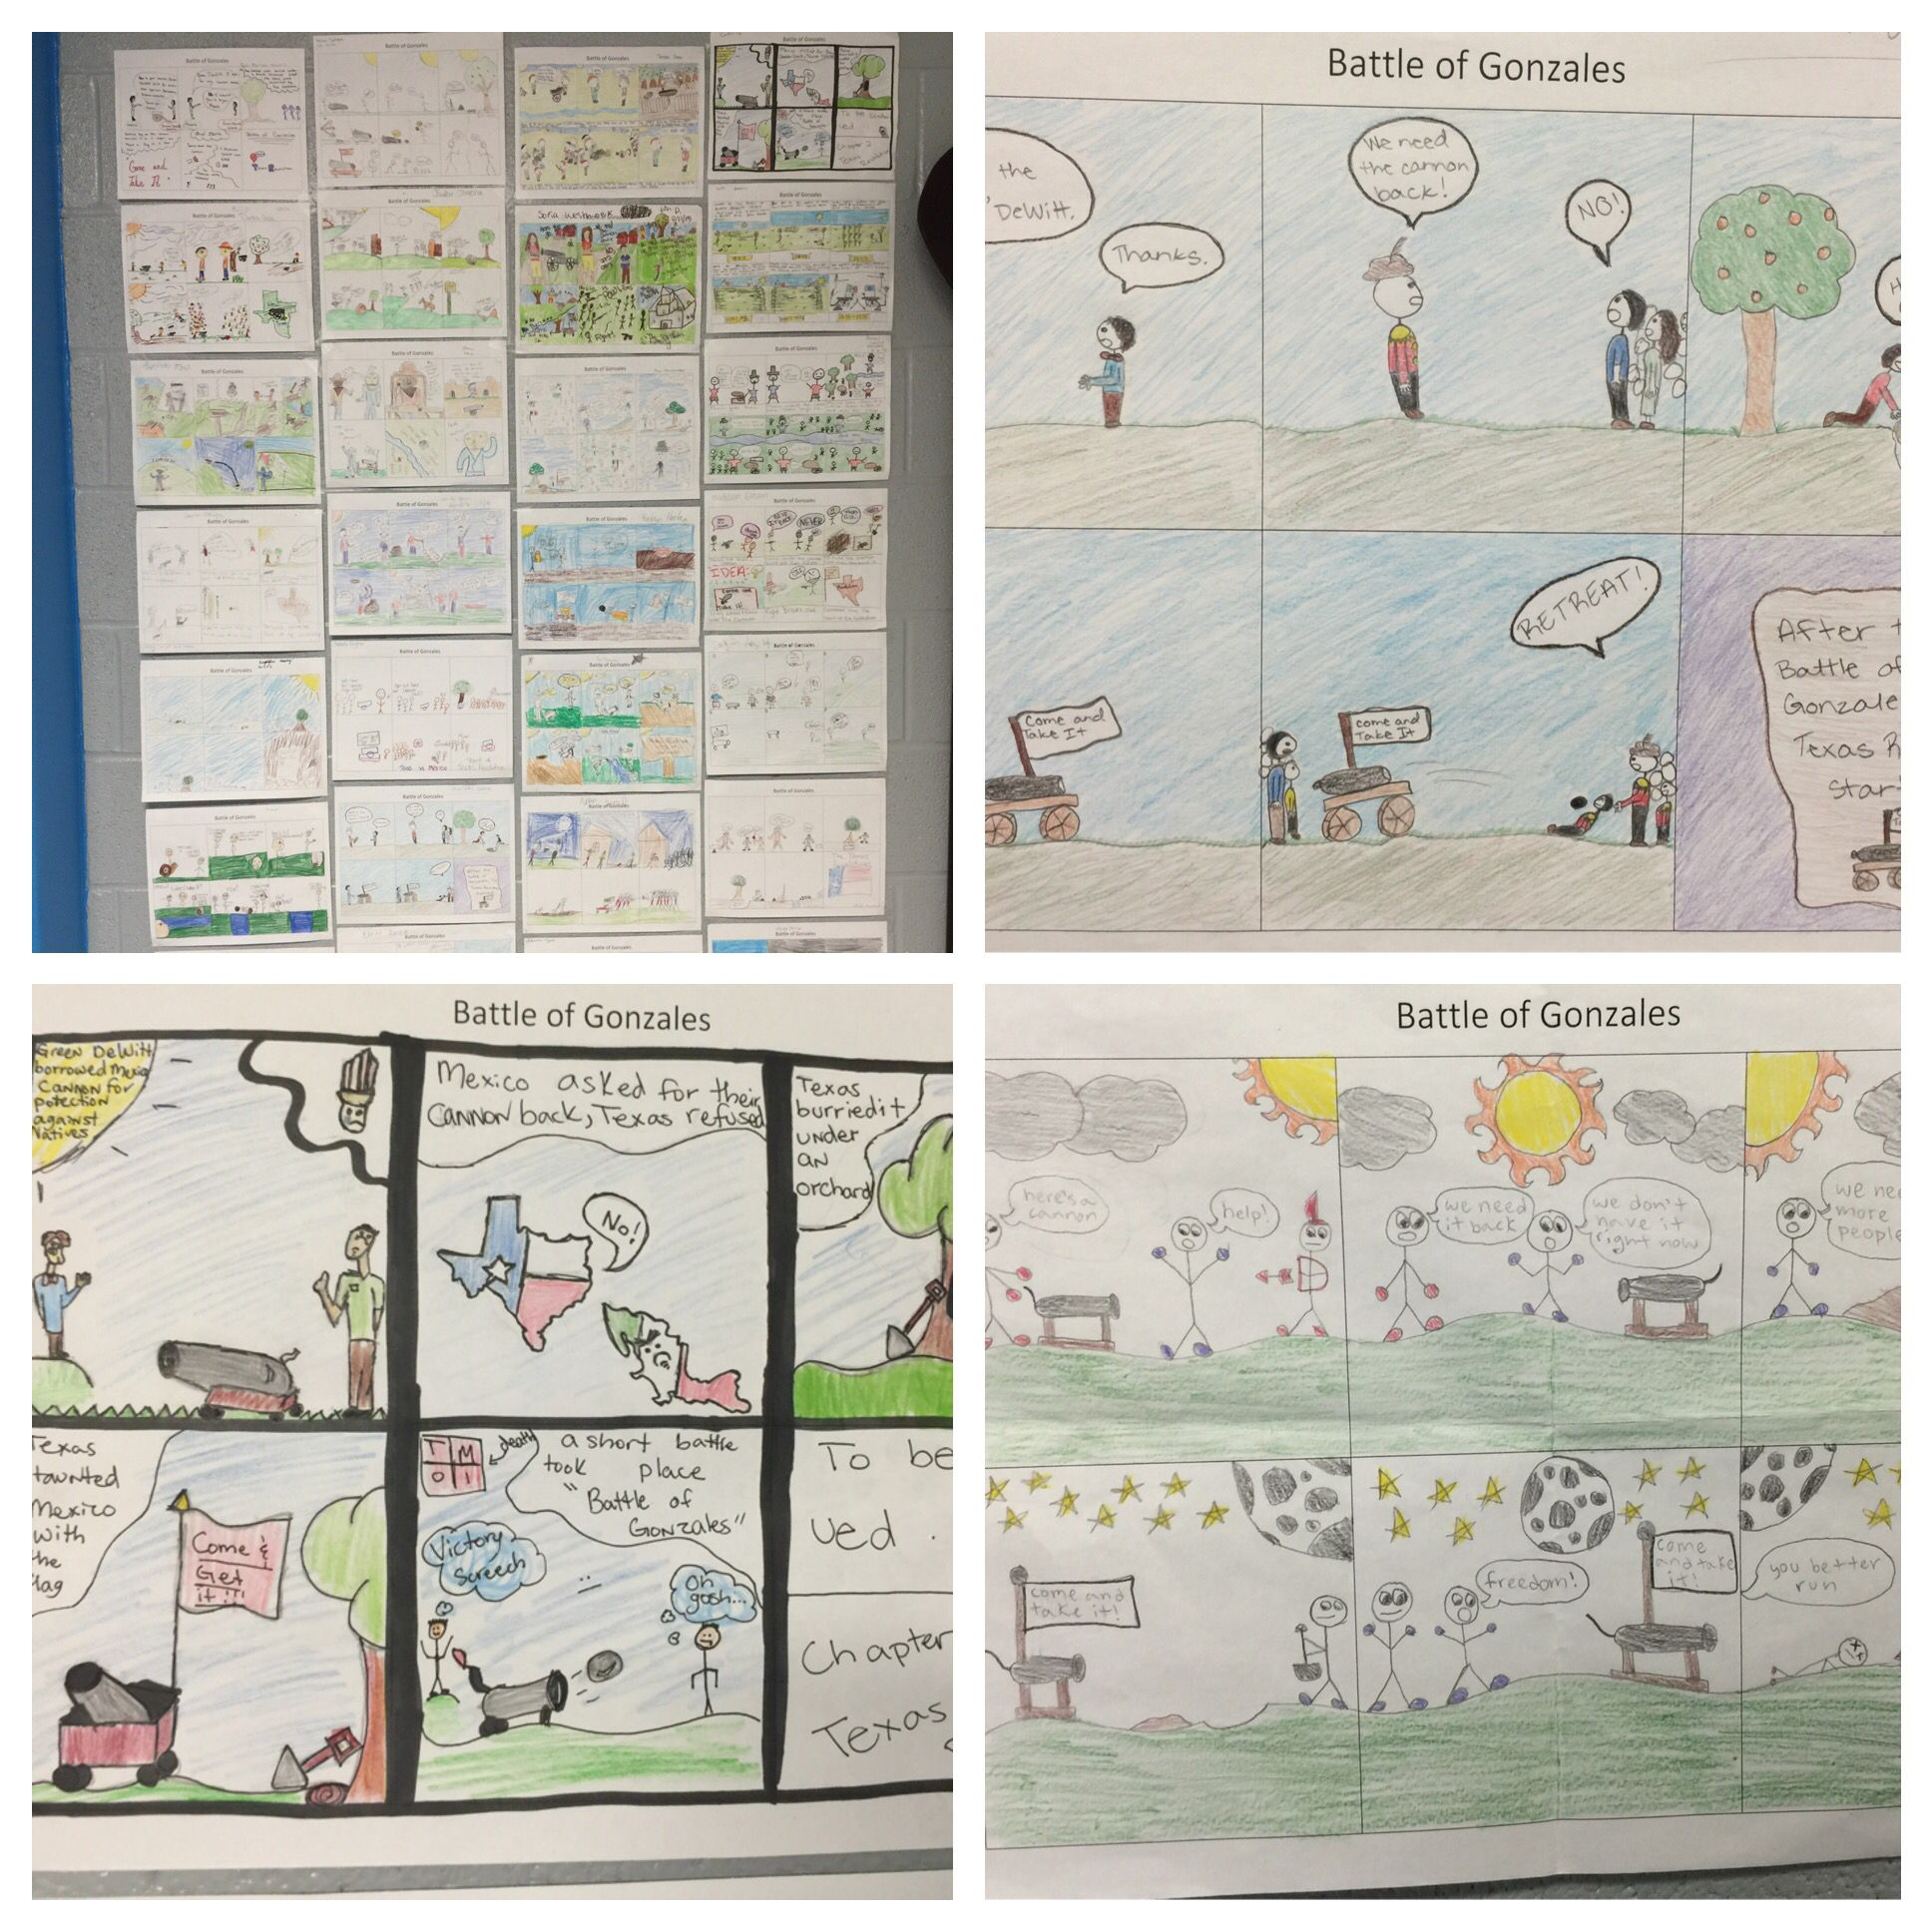 Battle Of Gonzales Cartoon Strip Students Research The